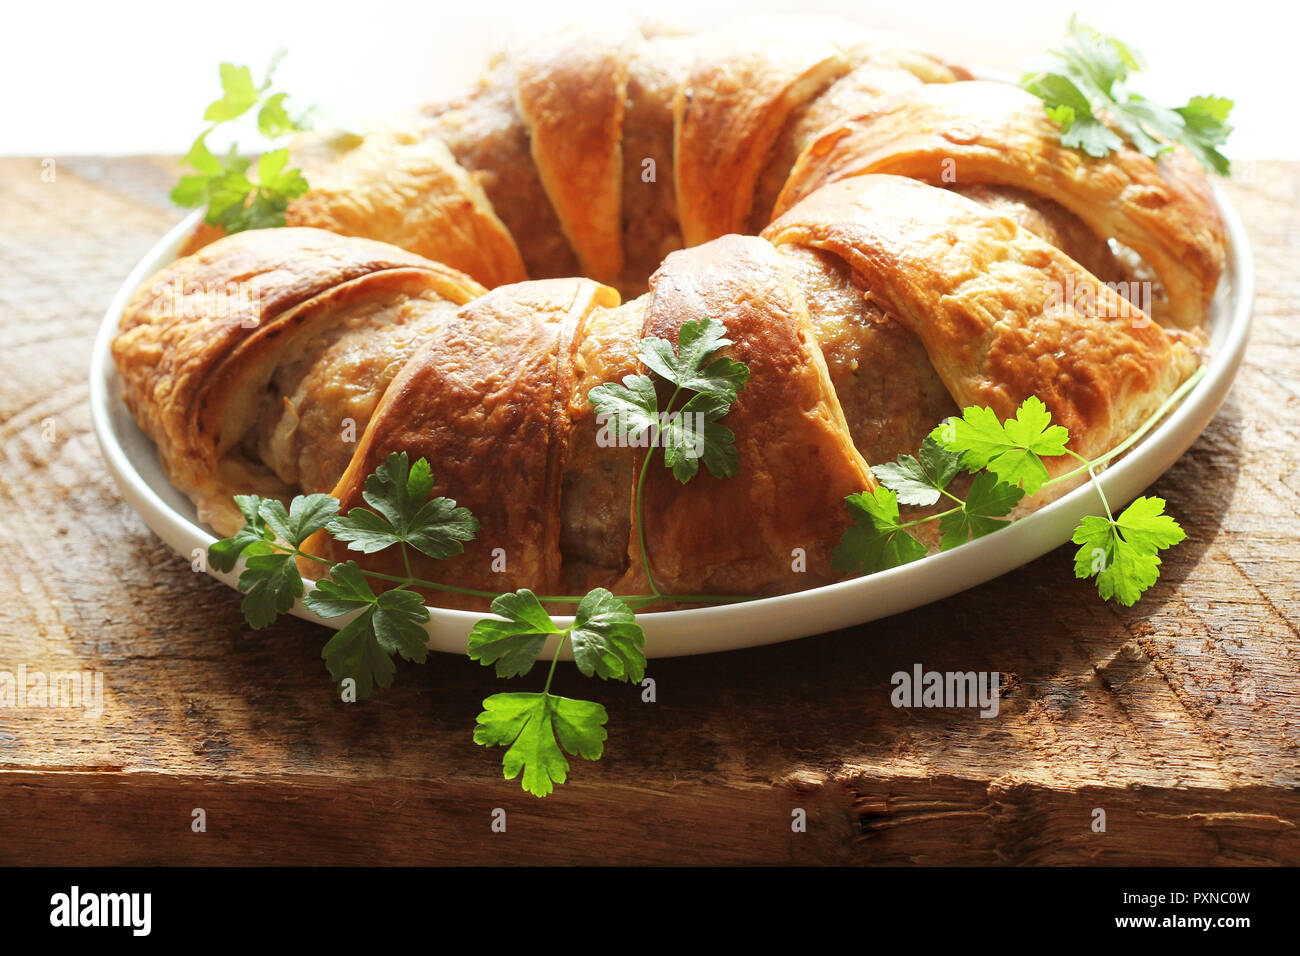 Meatloaf ring baked in pastry - Stock Image